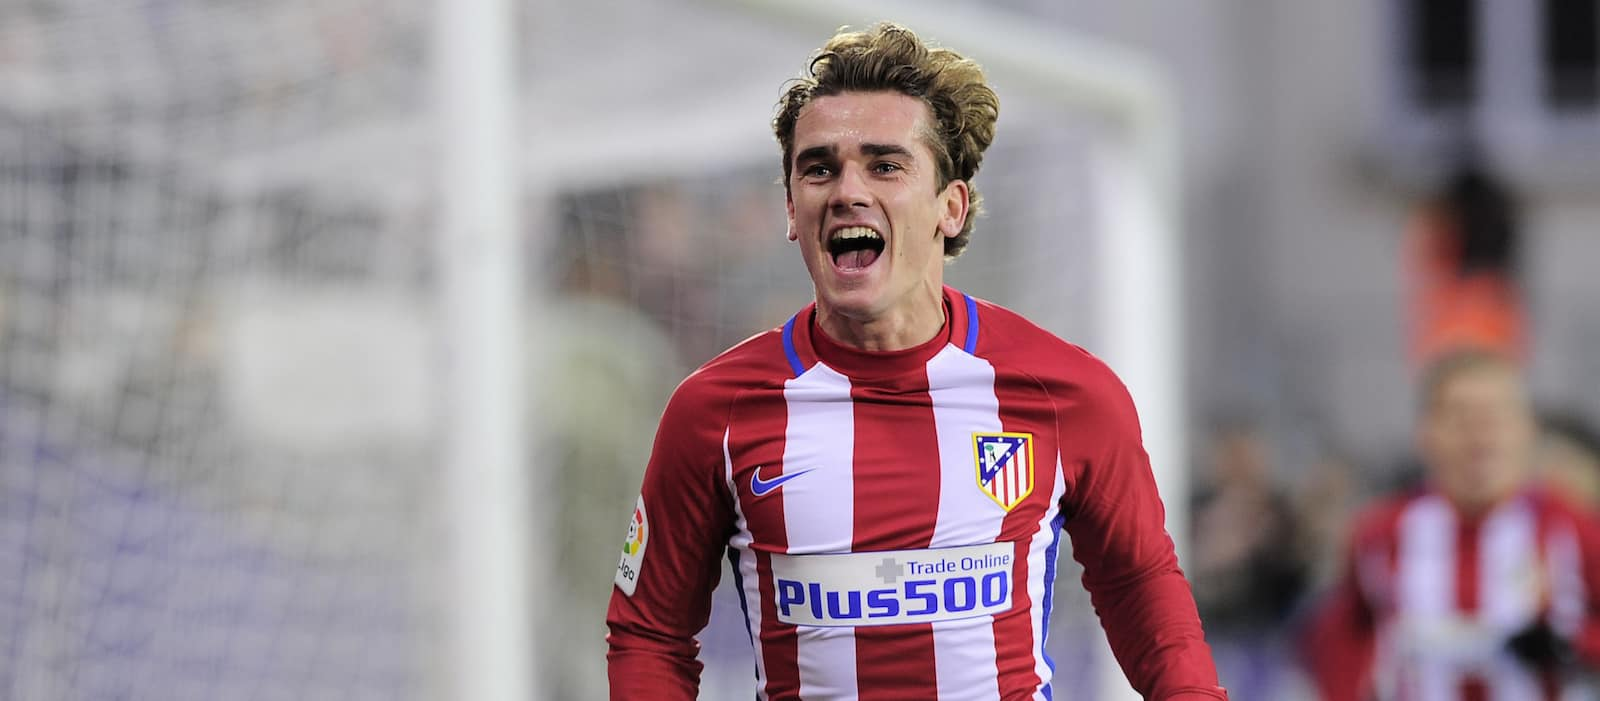 Antoine Griezmann can breath new life into Manchester United's fabled No.7 shirt